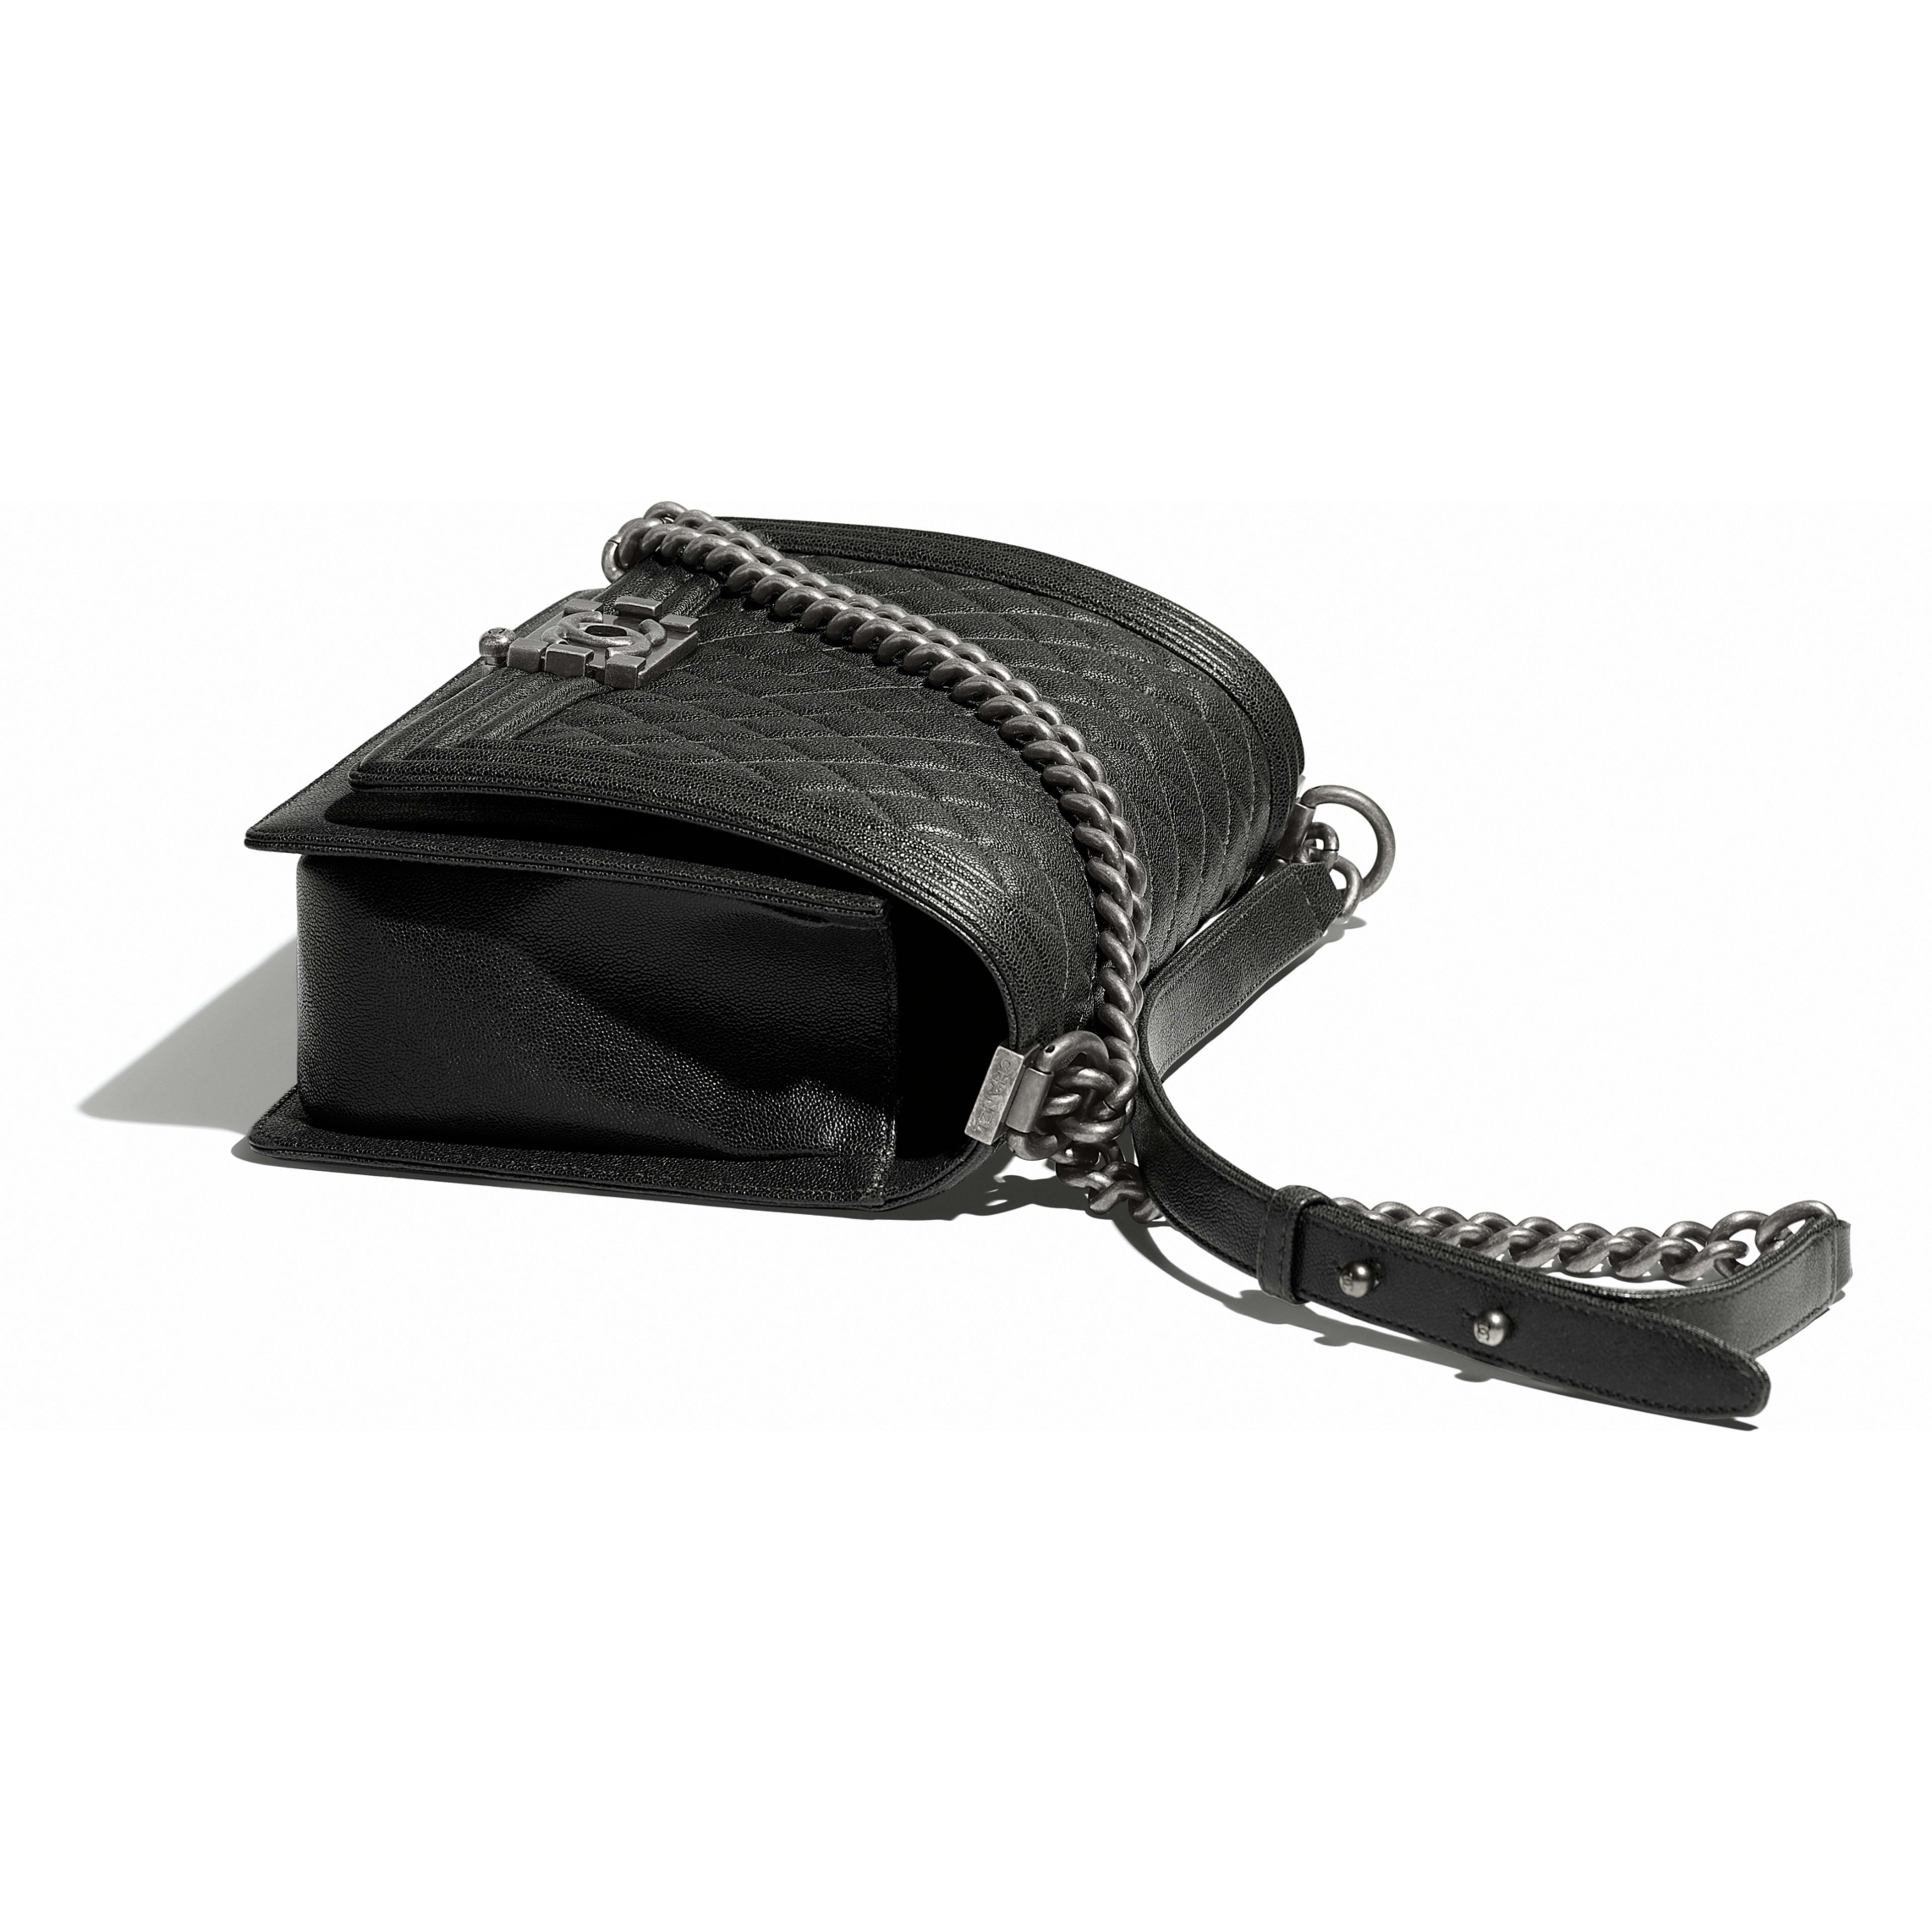 Large BOY CHANEL Handbag - Charcoal - Grained Calfskin & Ruthenium-Finish Metal - Other view - see full sized version